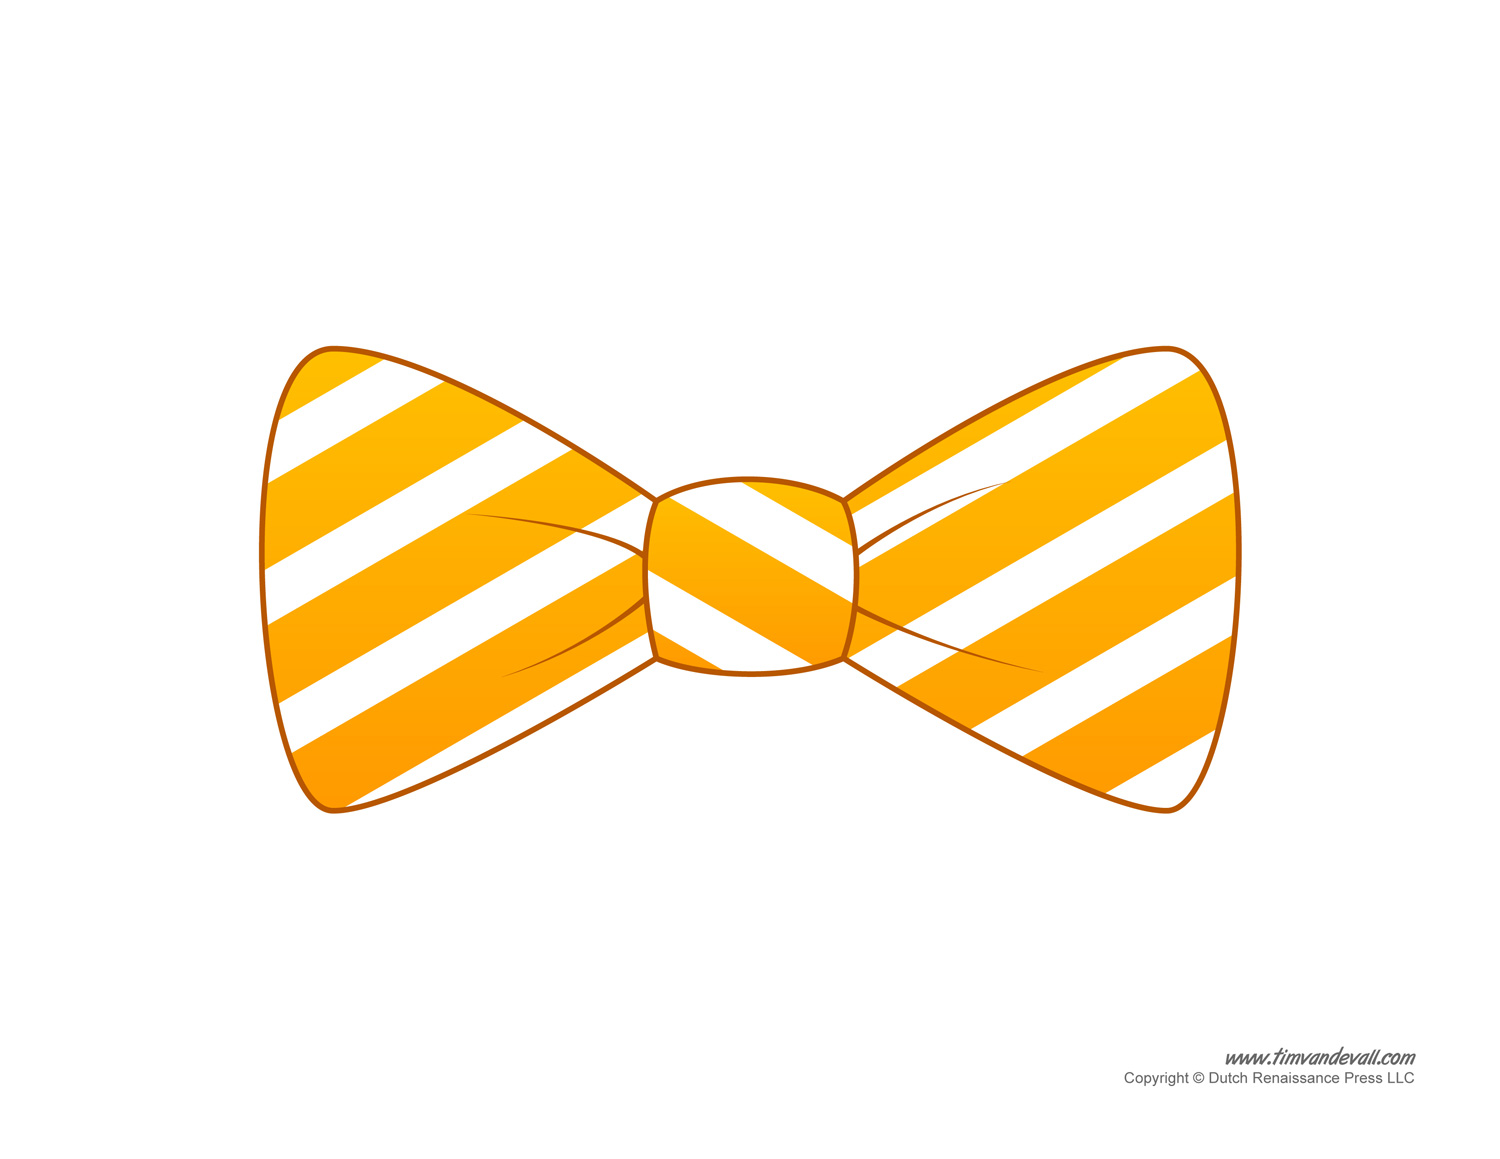 Paper bow tie templates bow tie printables bow tie printable bow tie drawing bow tie printable template maxwellsz